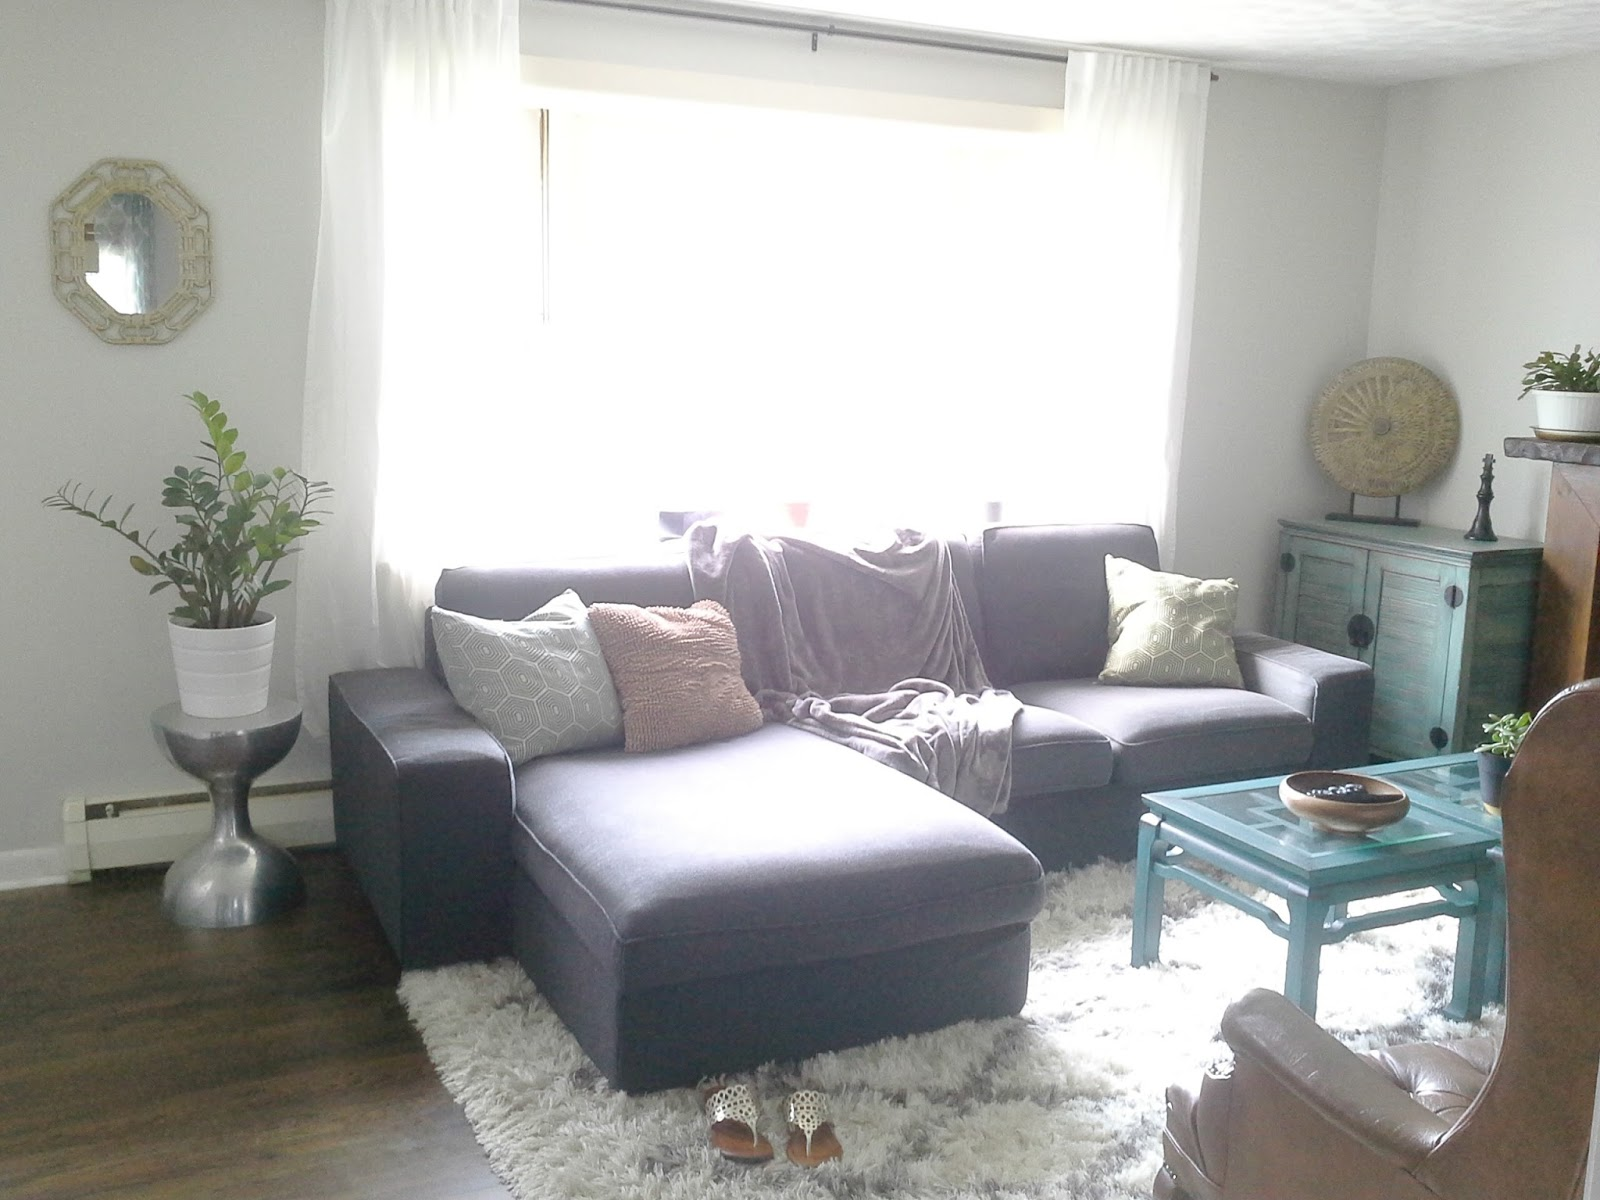 sofa ikea kivik opiniones living room with black leather lilly s home designs review loveseat chaise combination